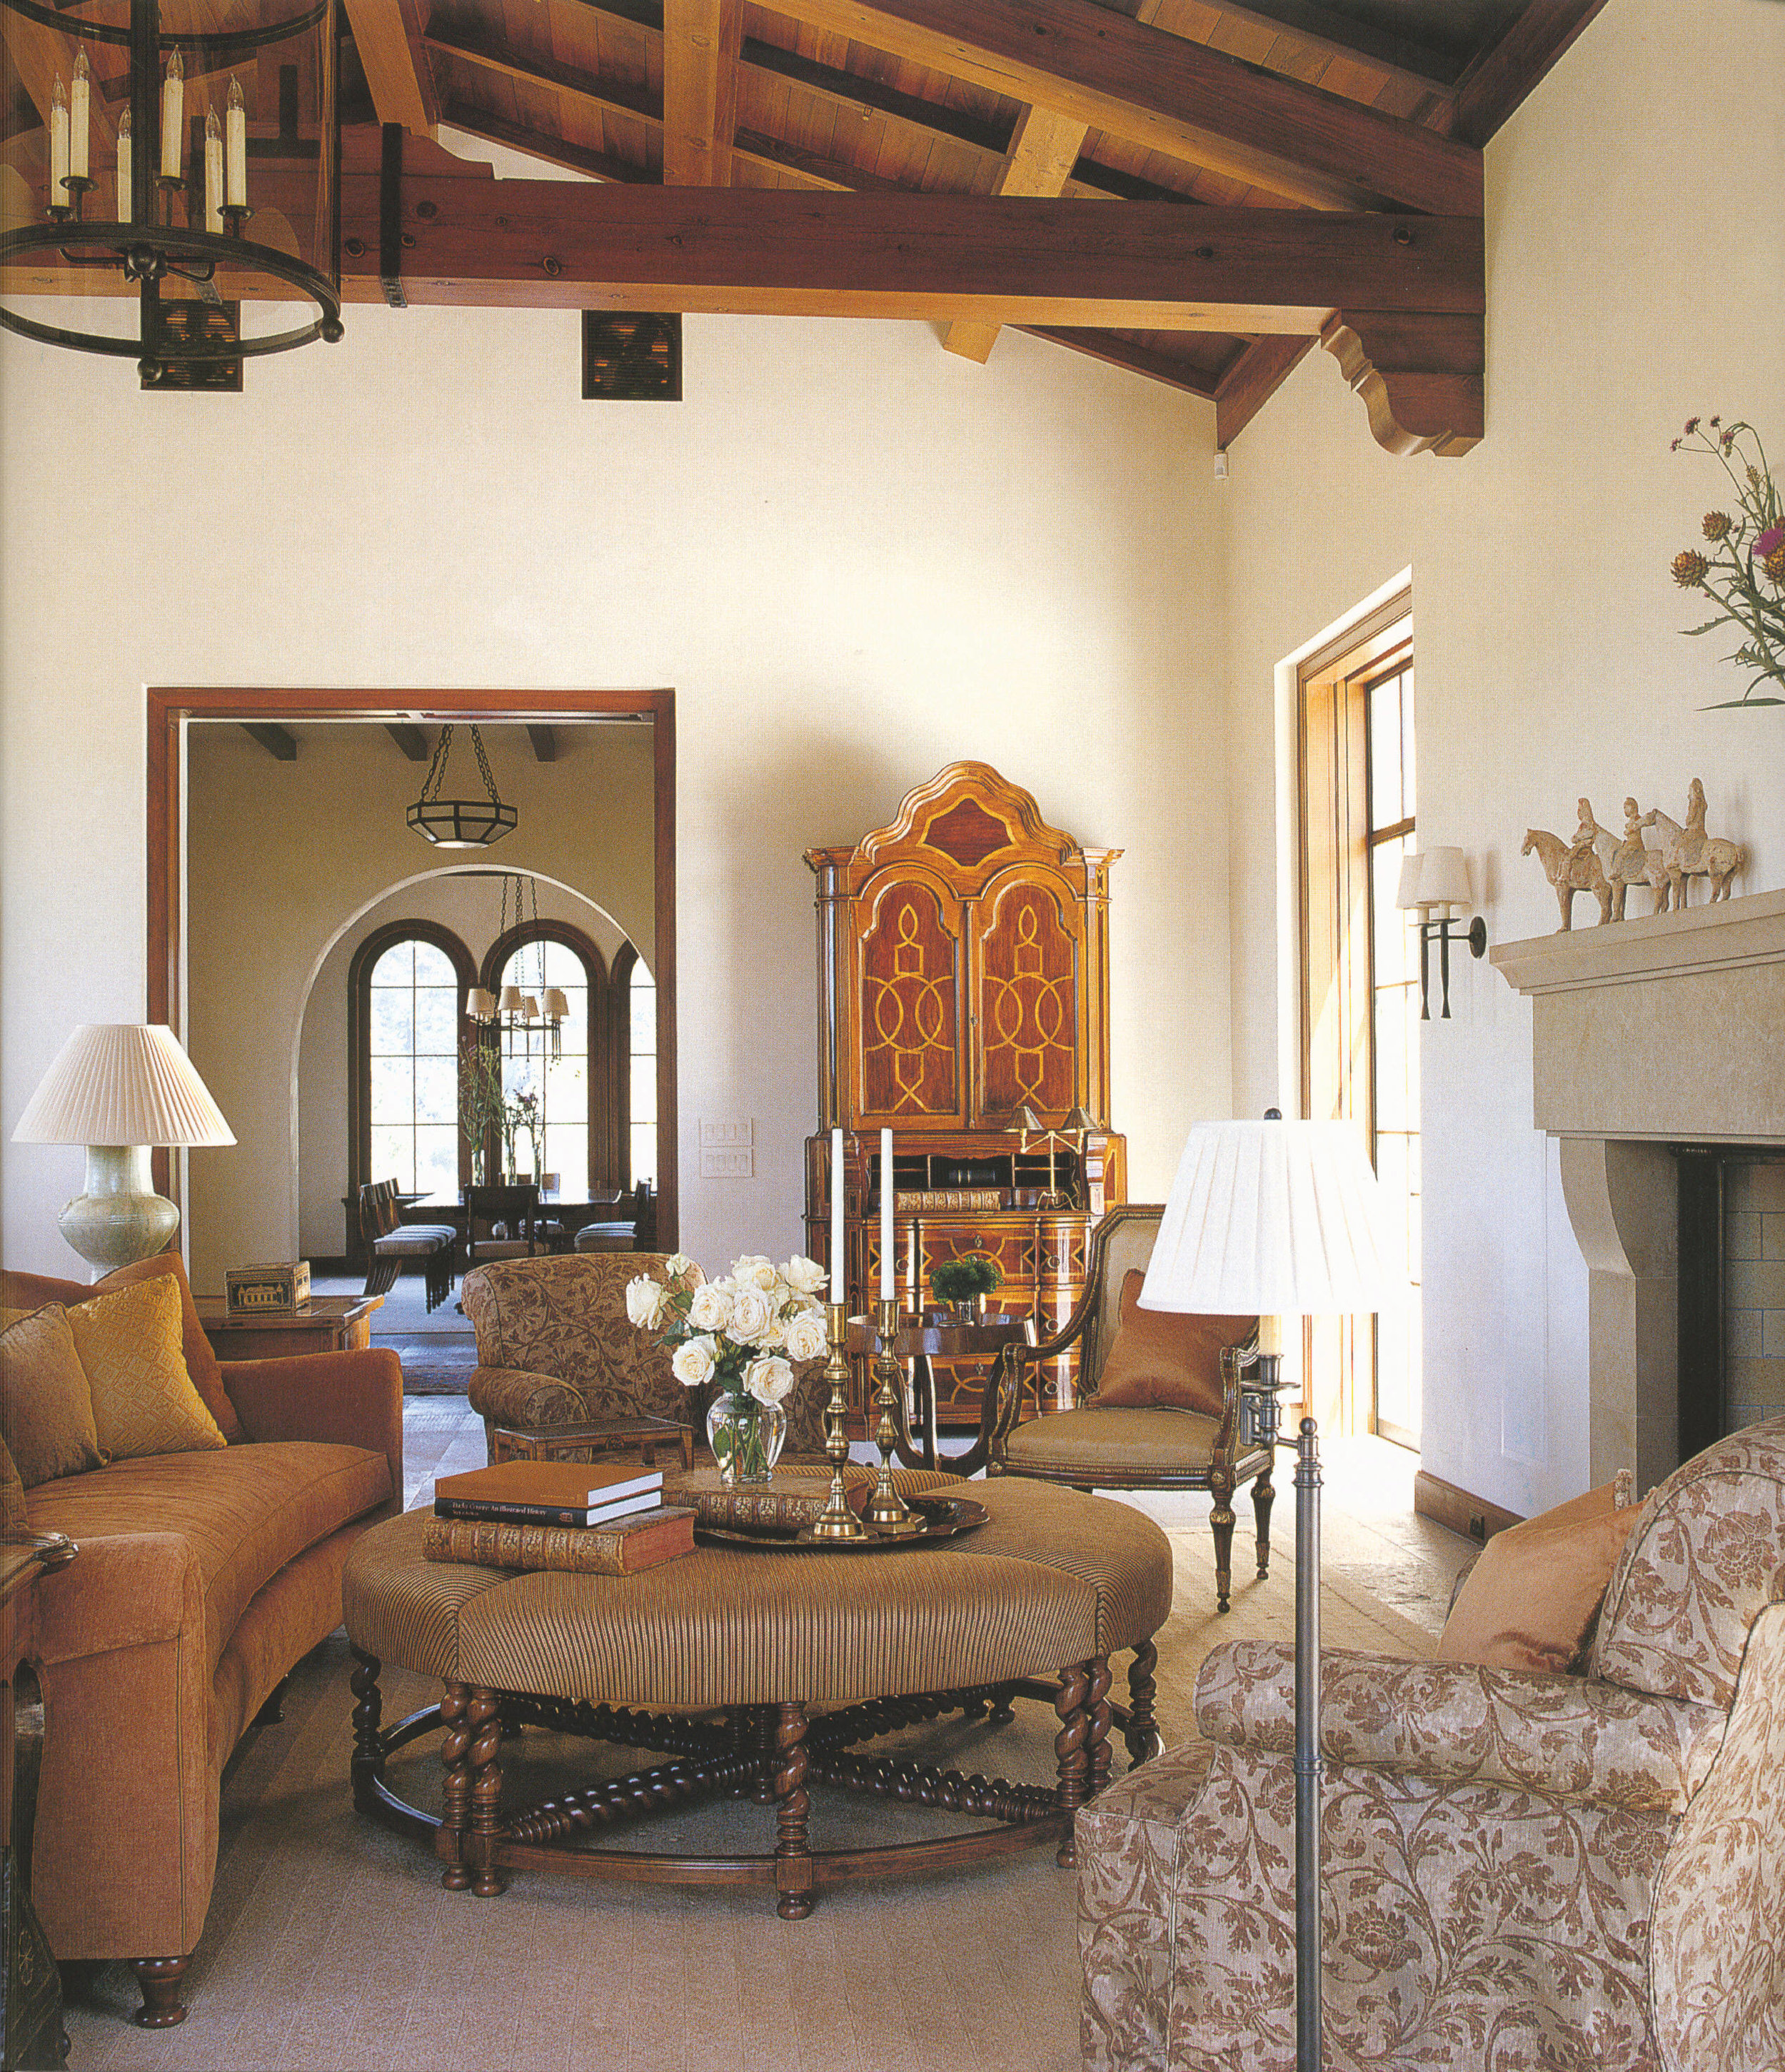 Spanish Revival The Wiseman Group